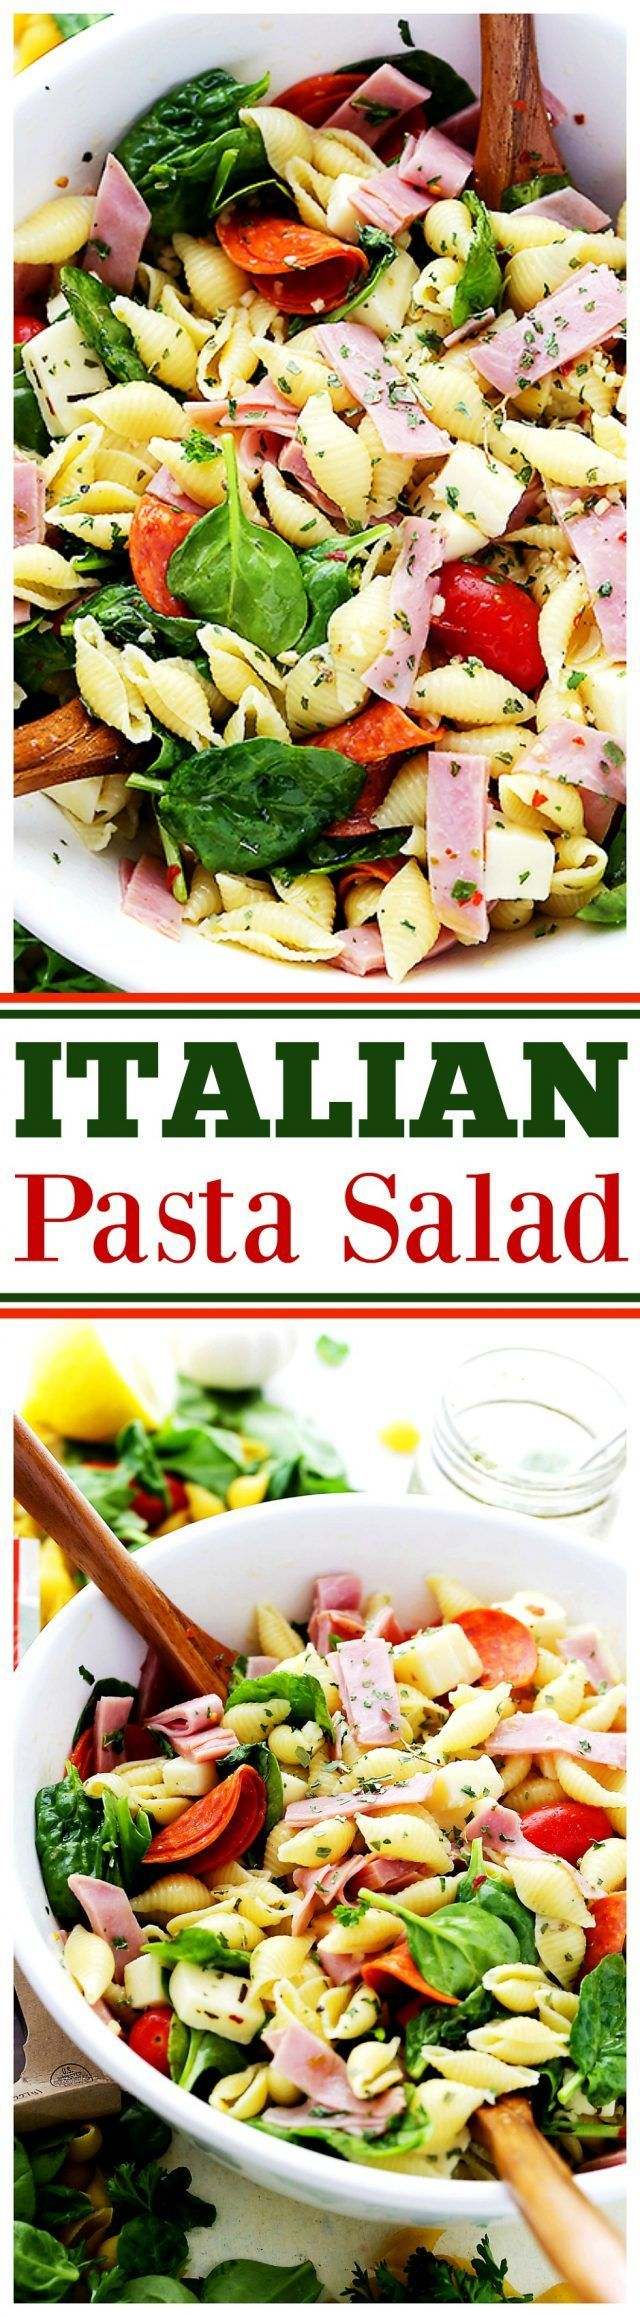 Italian Pasta Salad Recipe - Loaded with all your Italian favorites, like pepperoni, ham, tomatoes, spinach and cheese, this is the perfect pasta salad for any cookout, picnic or light summer meal. @hormelnatural #ad #sk #makethenaturalchoice